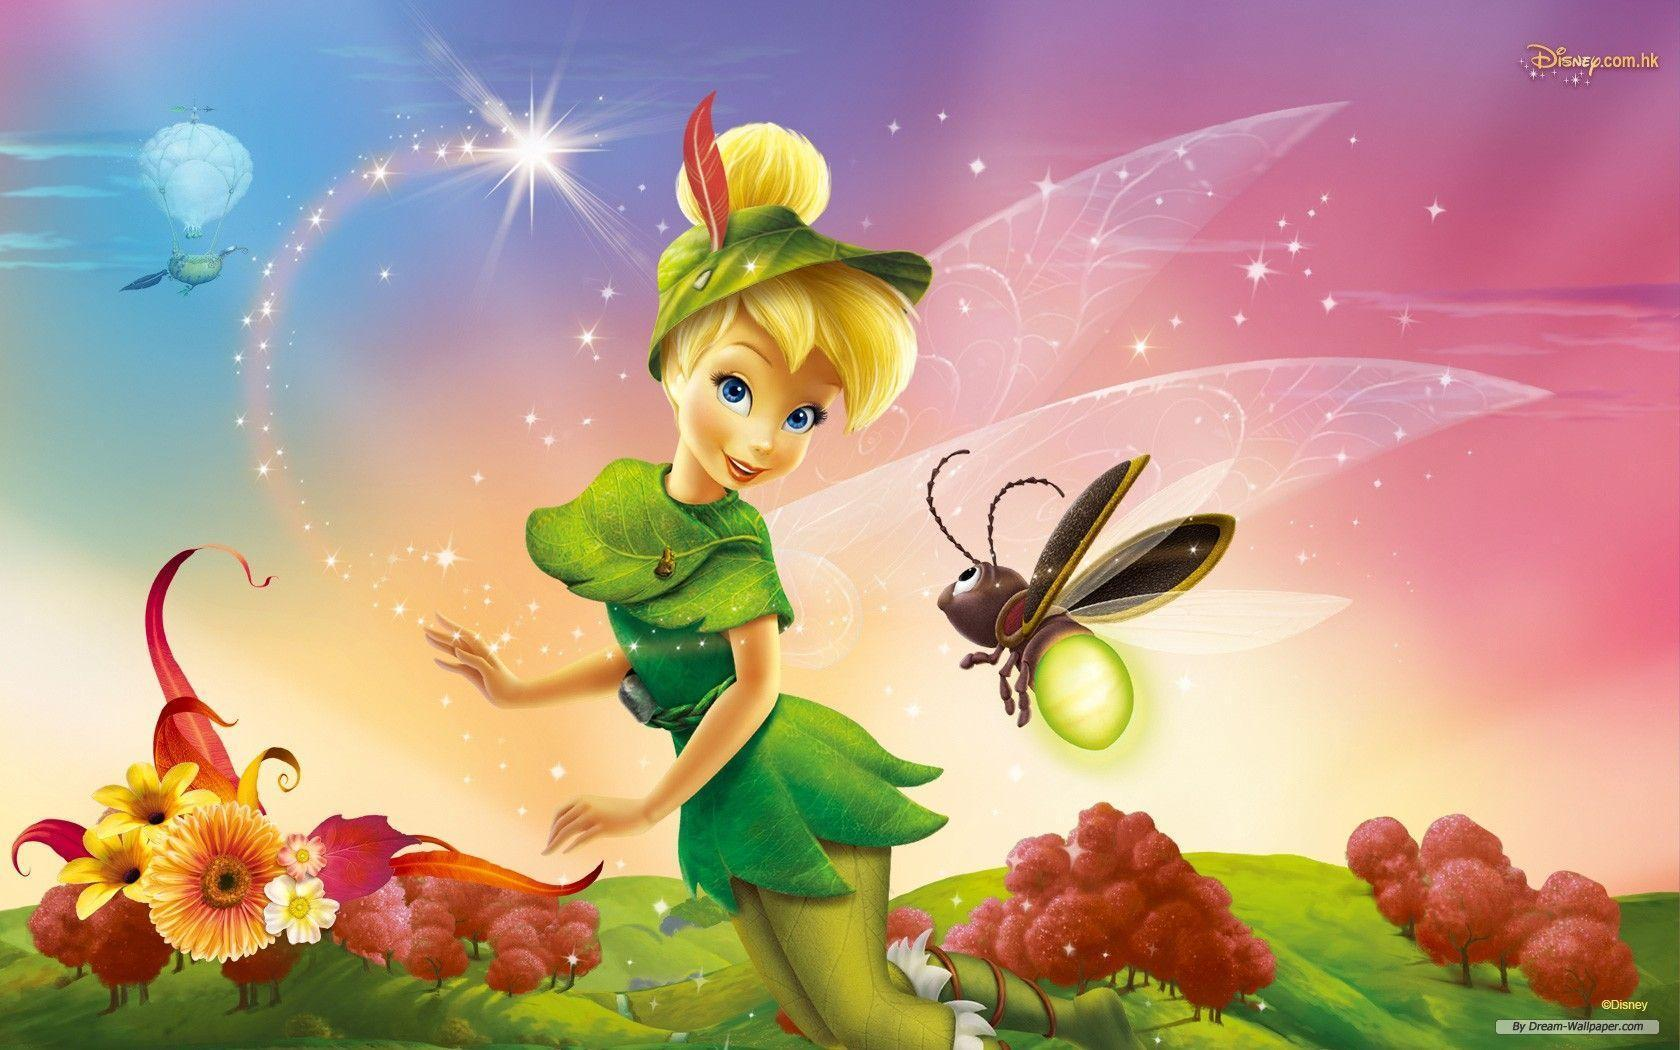 HD Wallpaper Disney Download - wallpaper.wiki